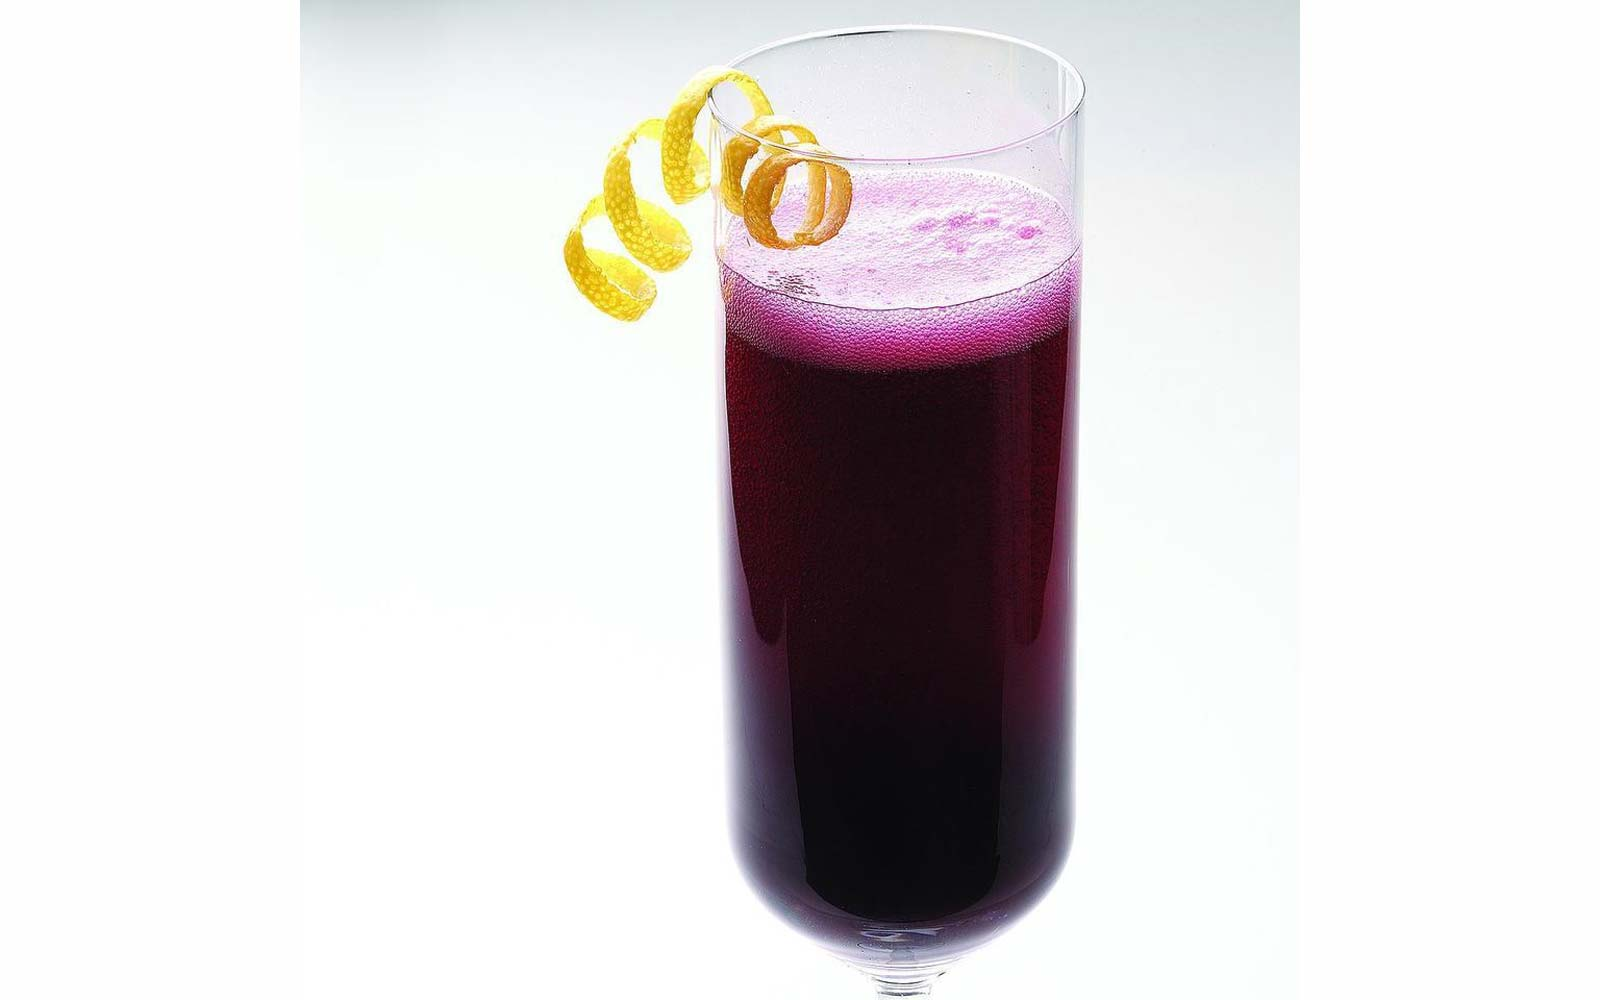 Blueberry-Ginger Bellini